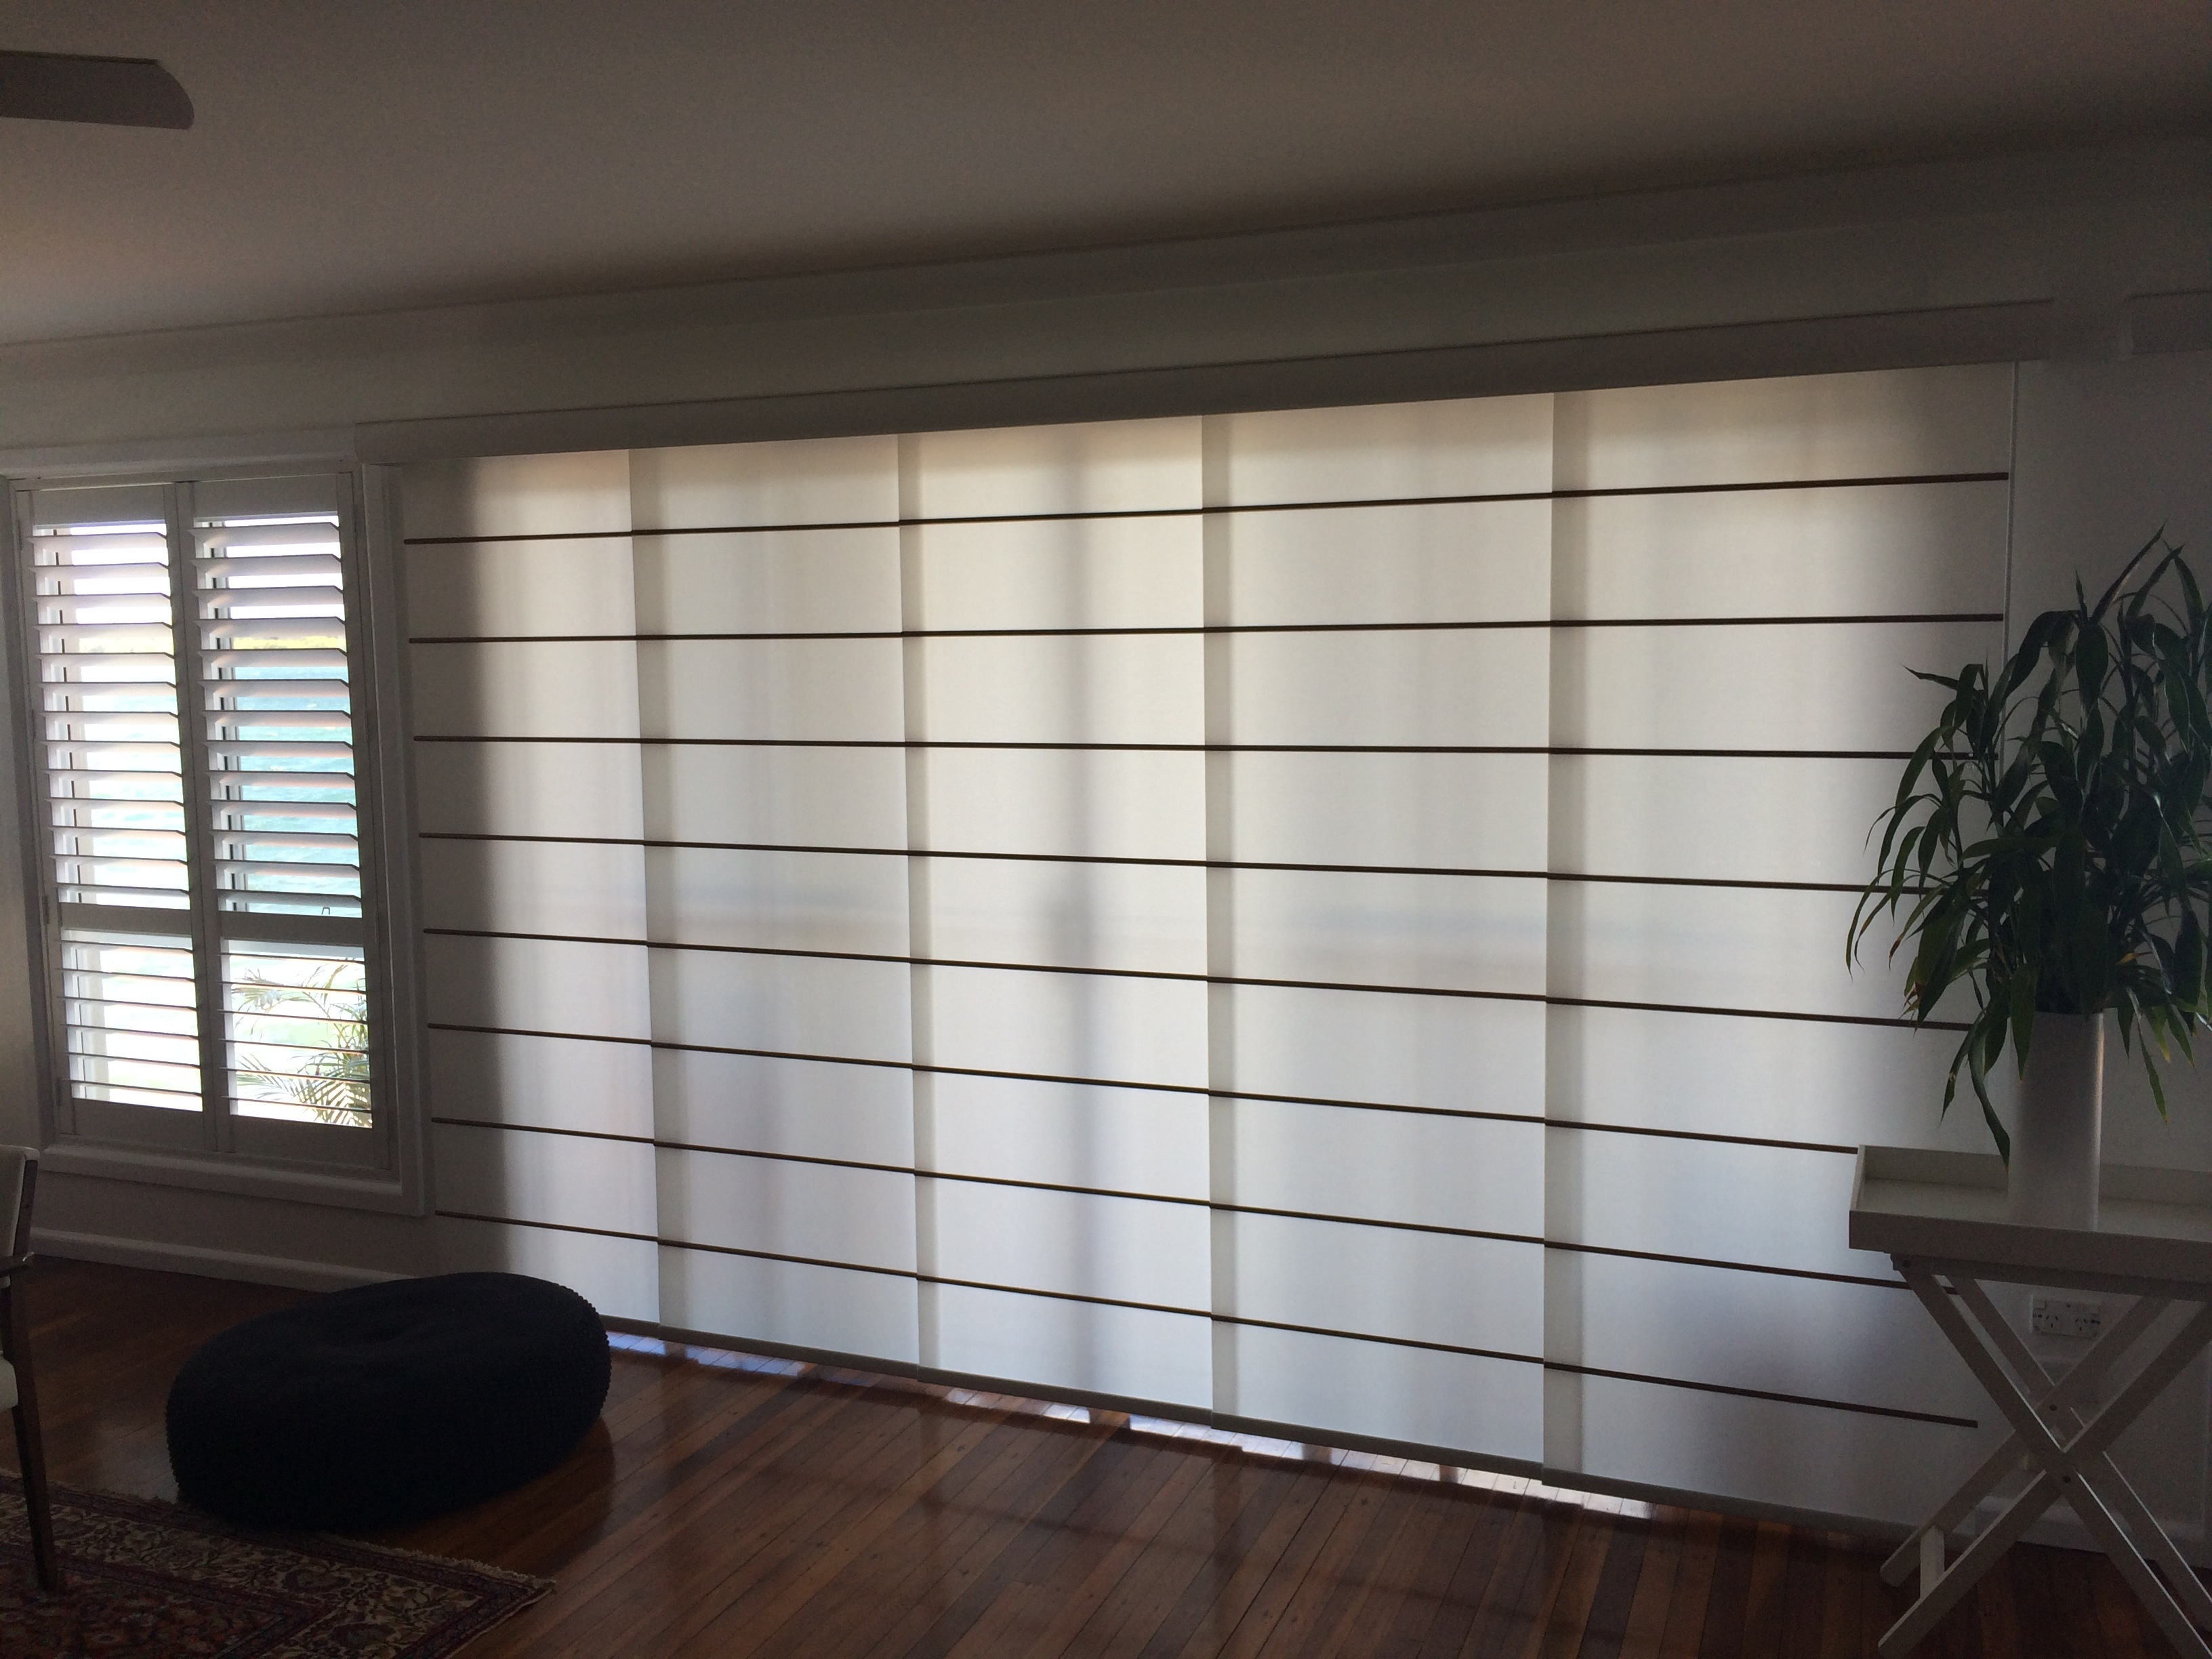 window blinds light levolor plantation sale faux darkening shades vs consumer interior venetian lowes perfect filtering room wood bali decoration l cellular reports design